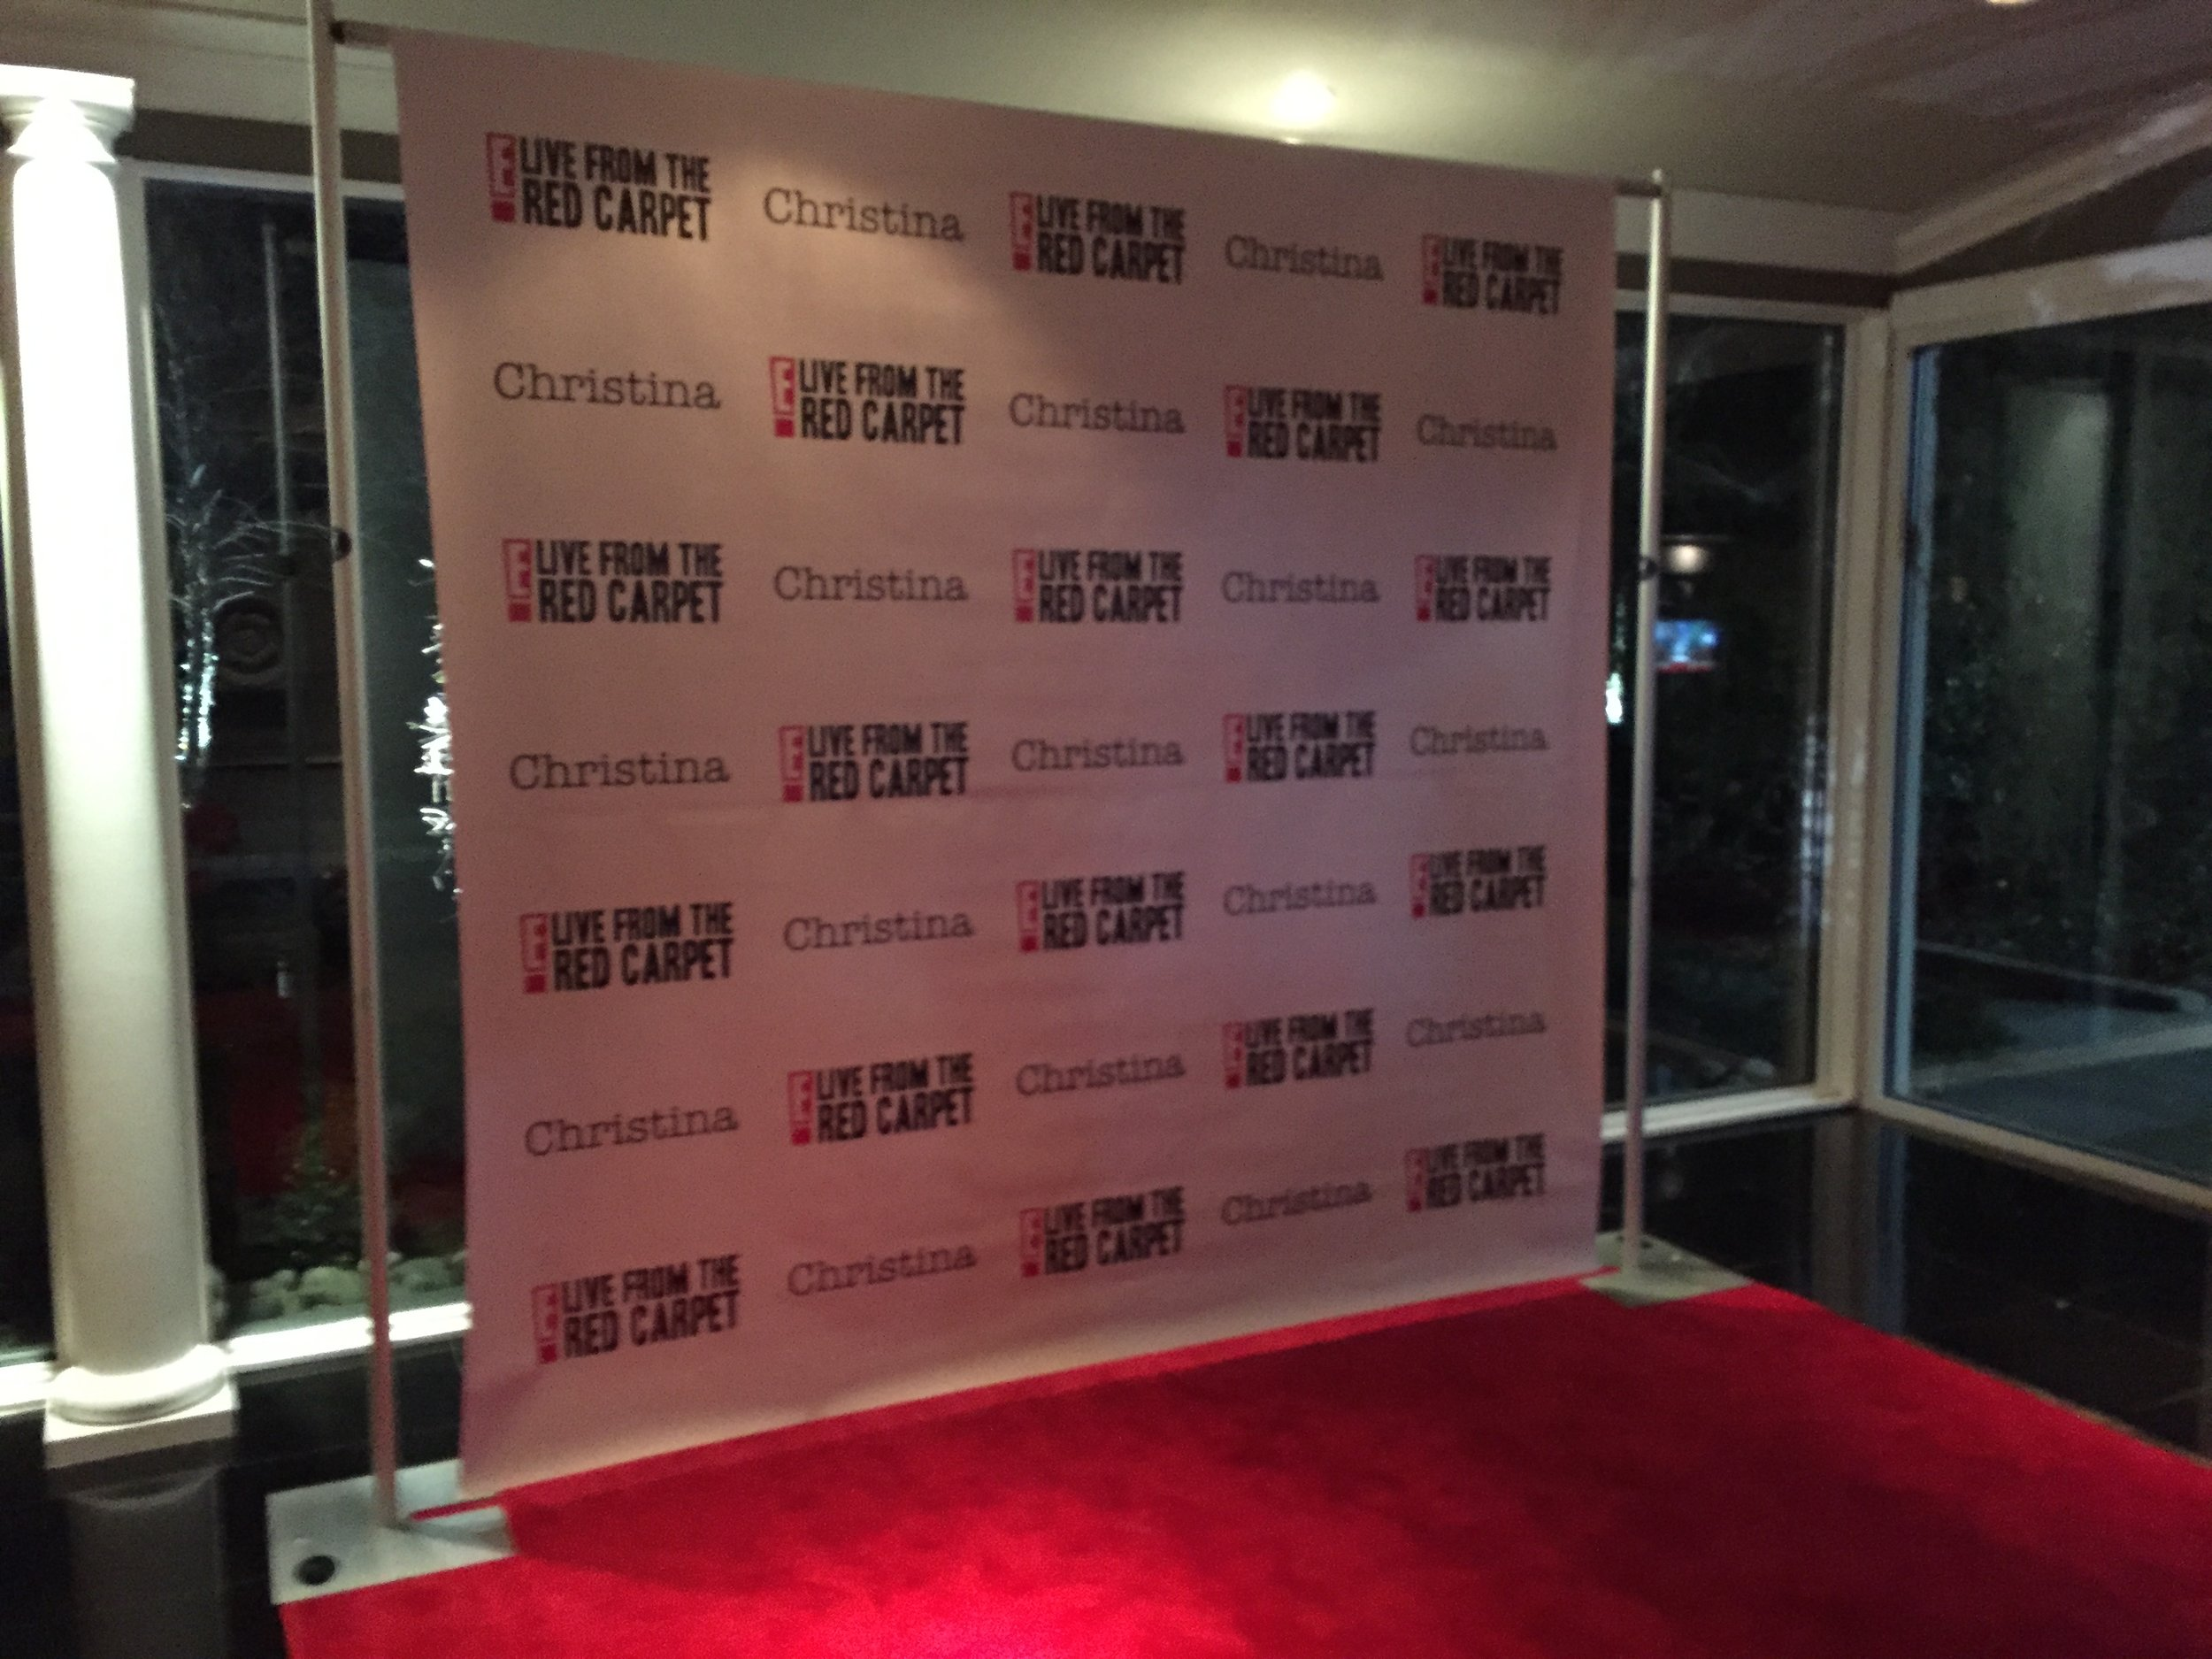 Custom Step and Repeat - We will print you a Hollywood Style backdrop with a logo we make just for your event.You get to take this home with you after the event! We print your custom 10ft by 8ft backdrop on cloth, so it can be reused for subsequent events!